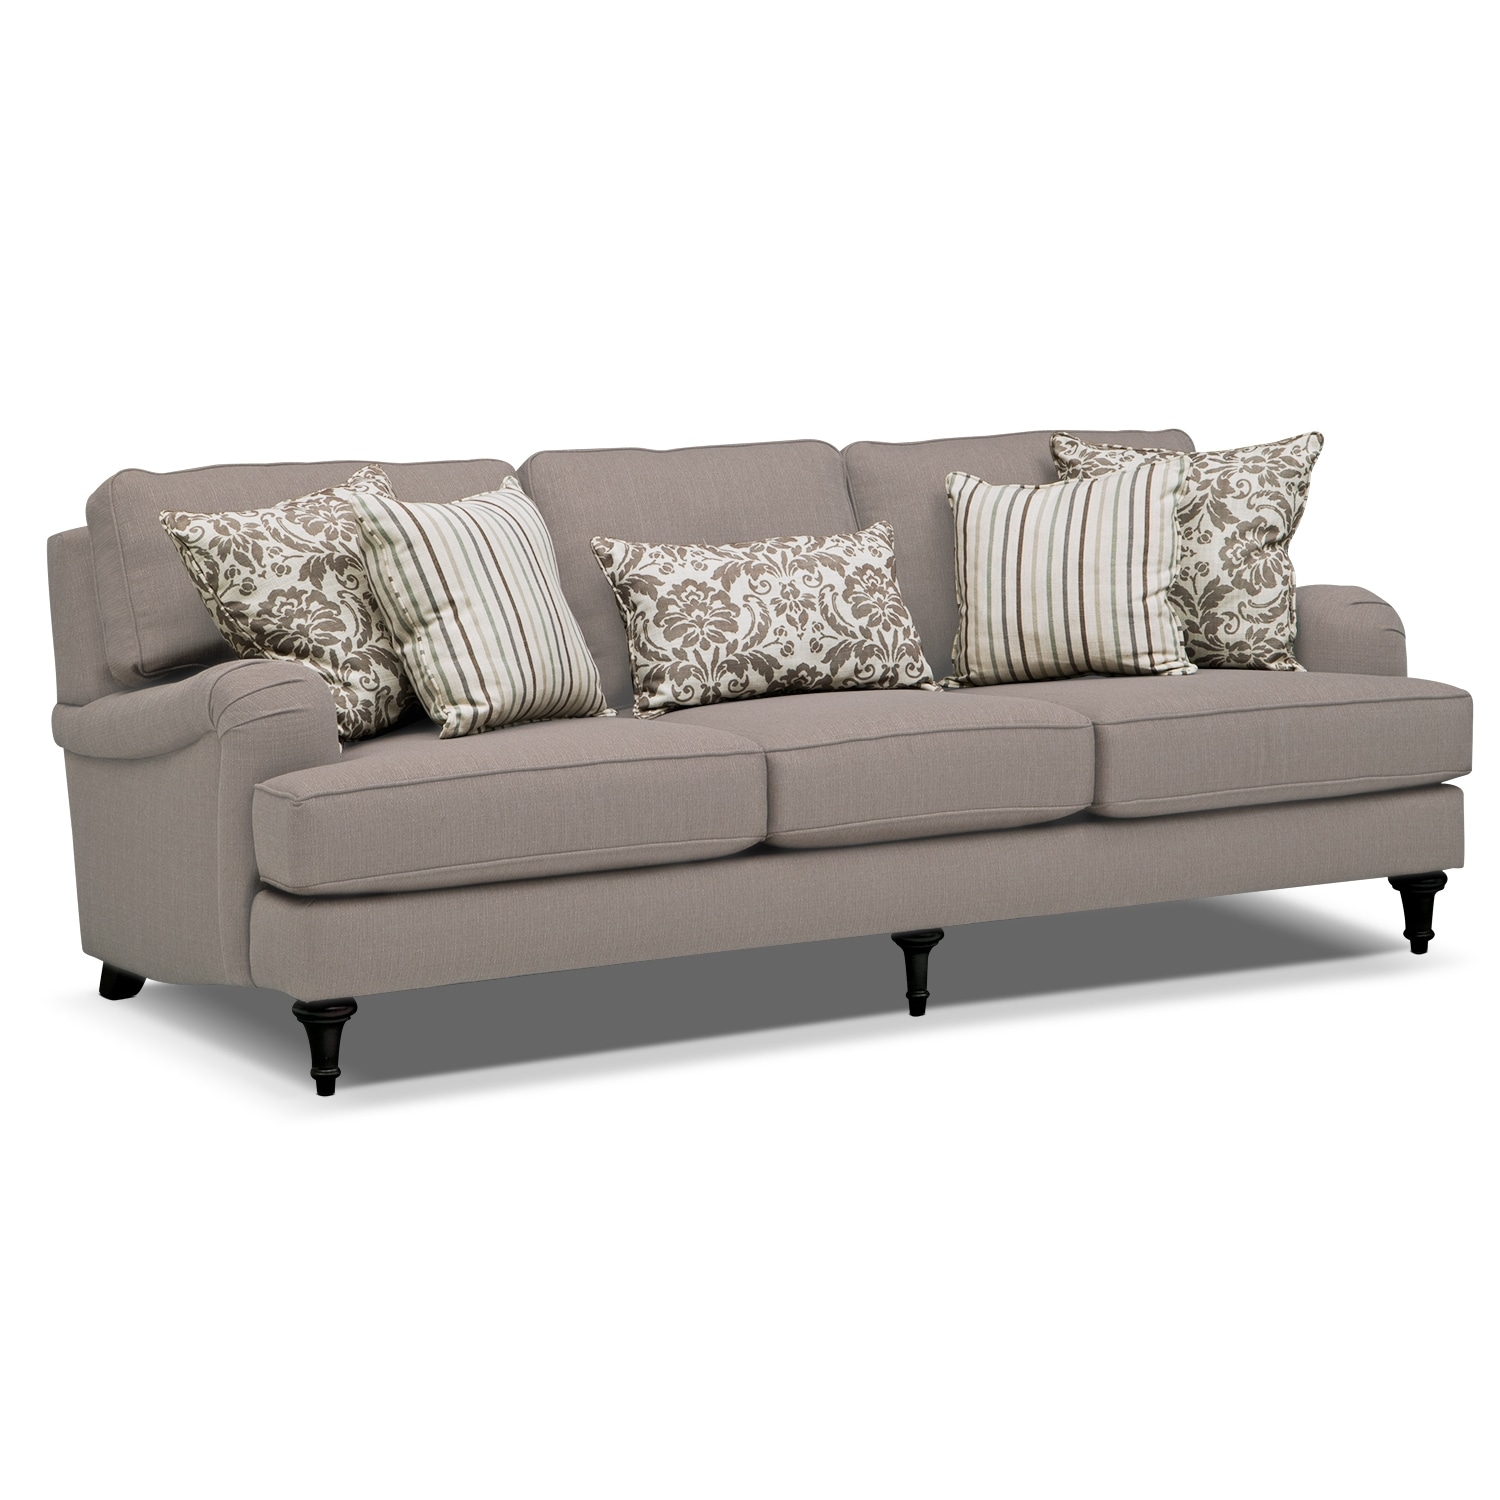 candice sofa value city furniture ForFurniture Furniture